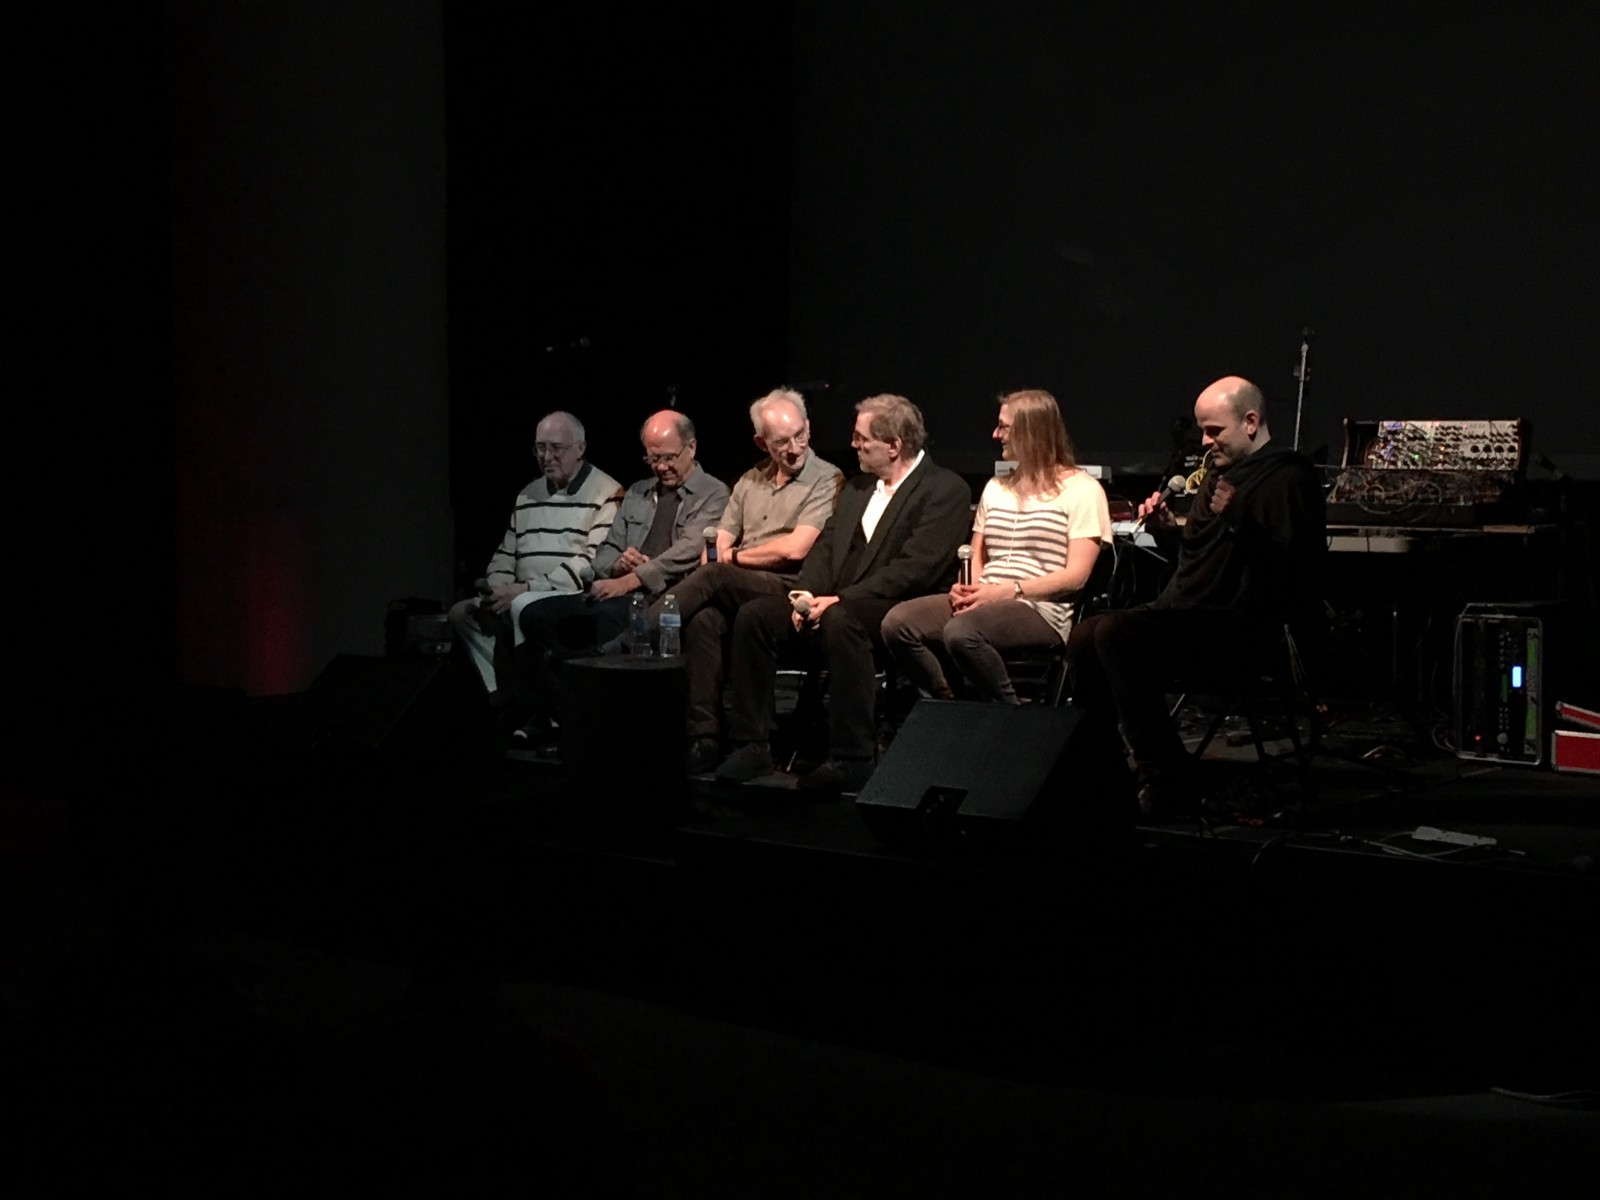 Tom Oberheim, Dave Smith, Roger Linn, Keith McMillen, Jessica Rylan, Peter Apfelbaum at the Buchla memorial festival